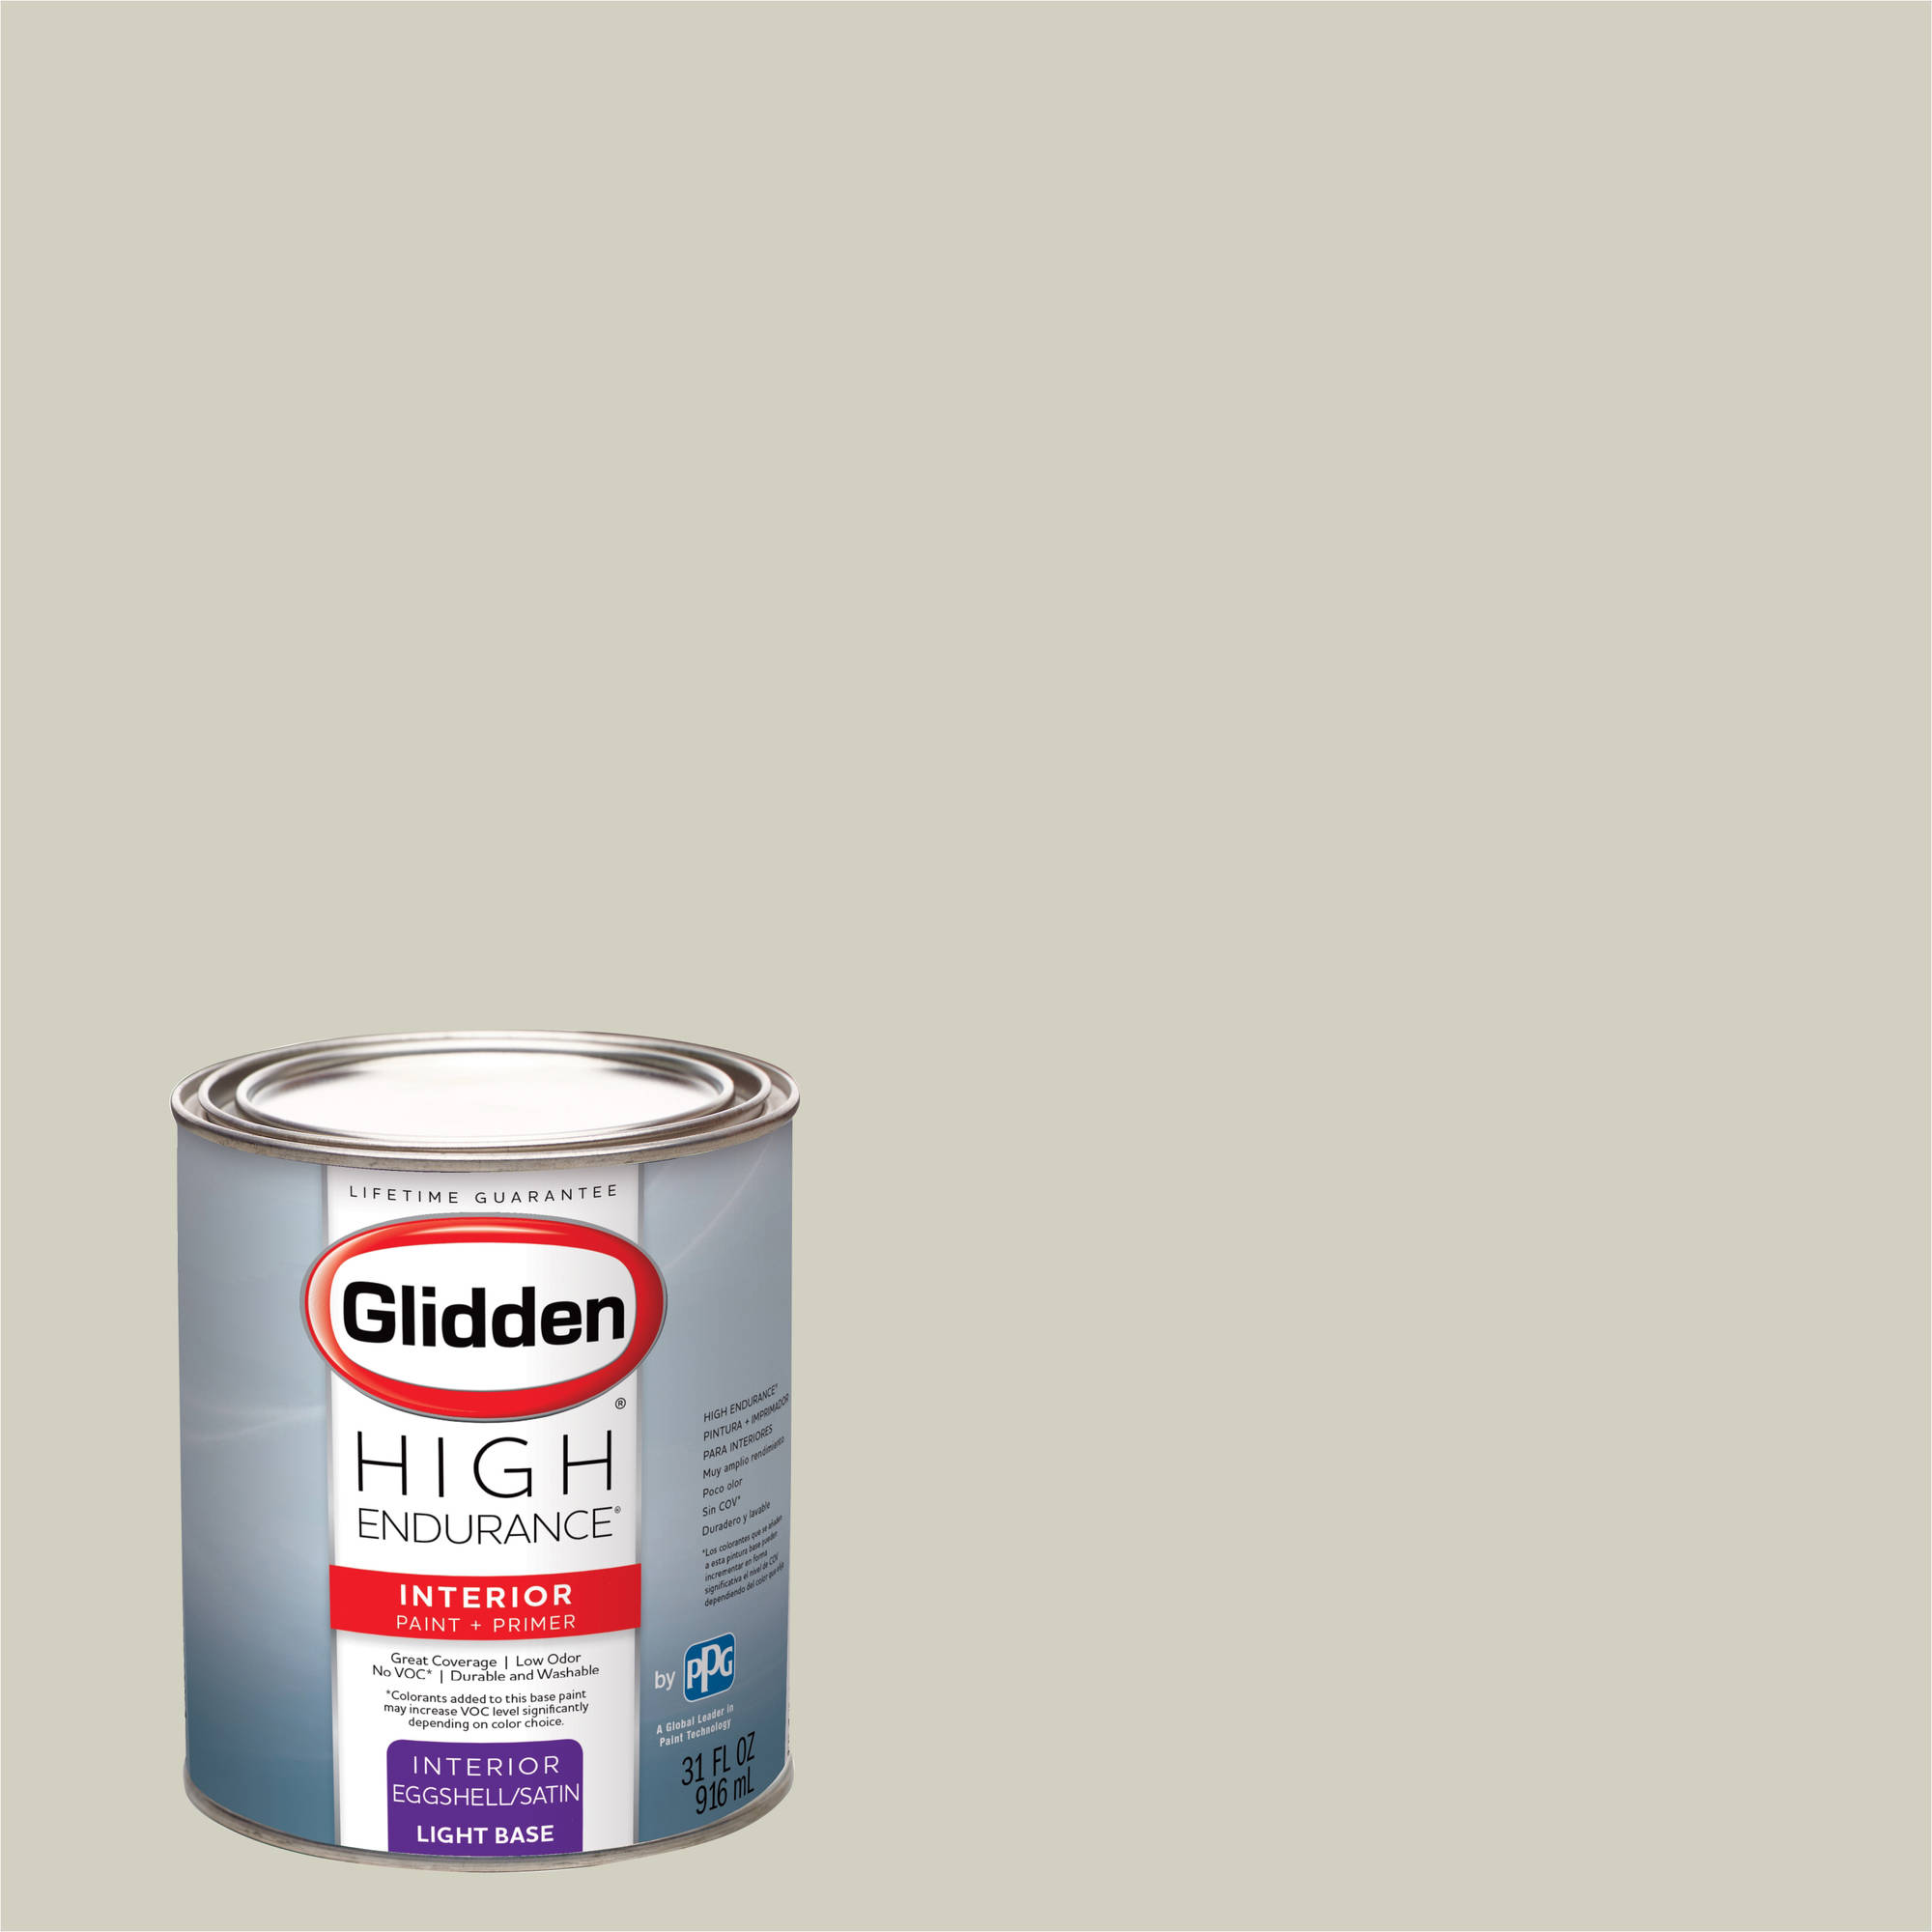 White Sage Paint Glidden High Endurance Interior Paint And Primer White Sage 60yy 65 082